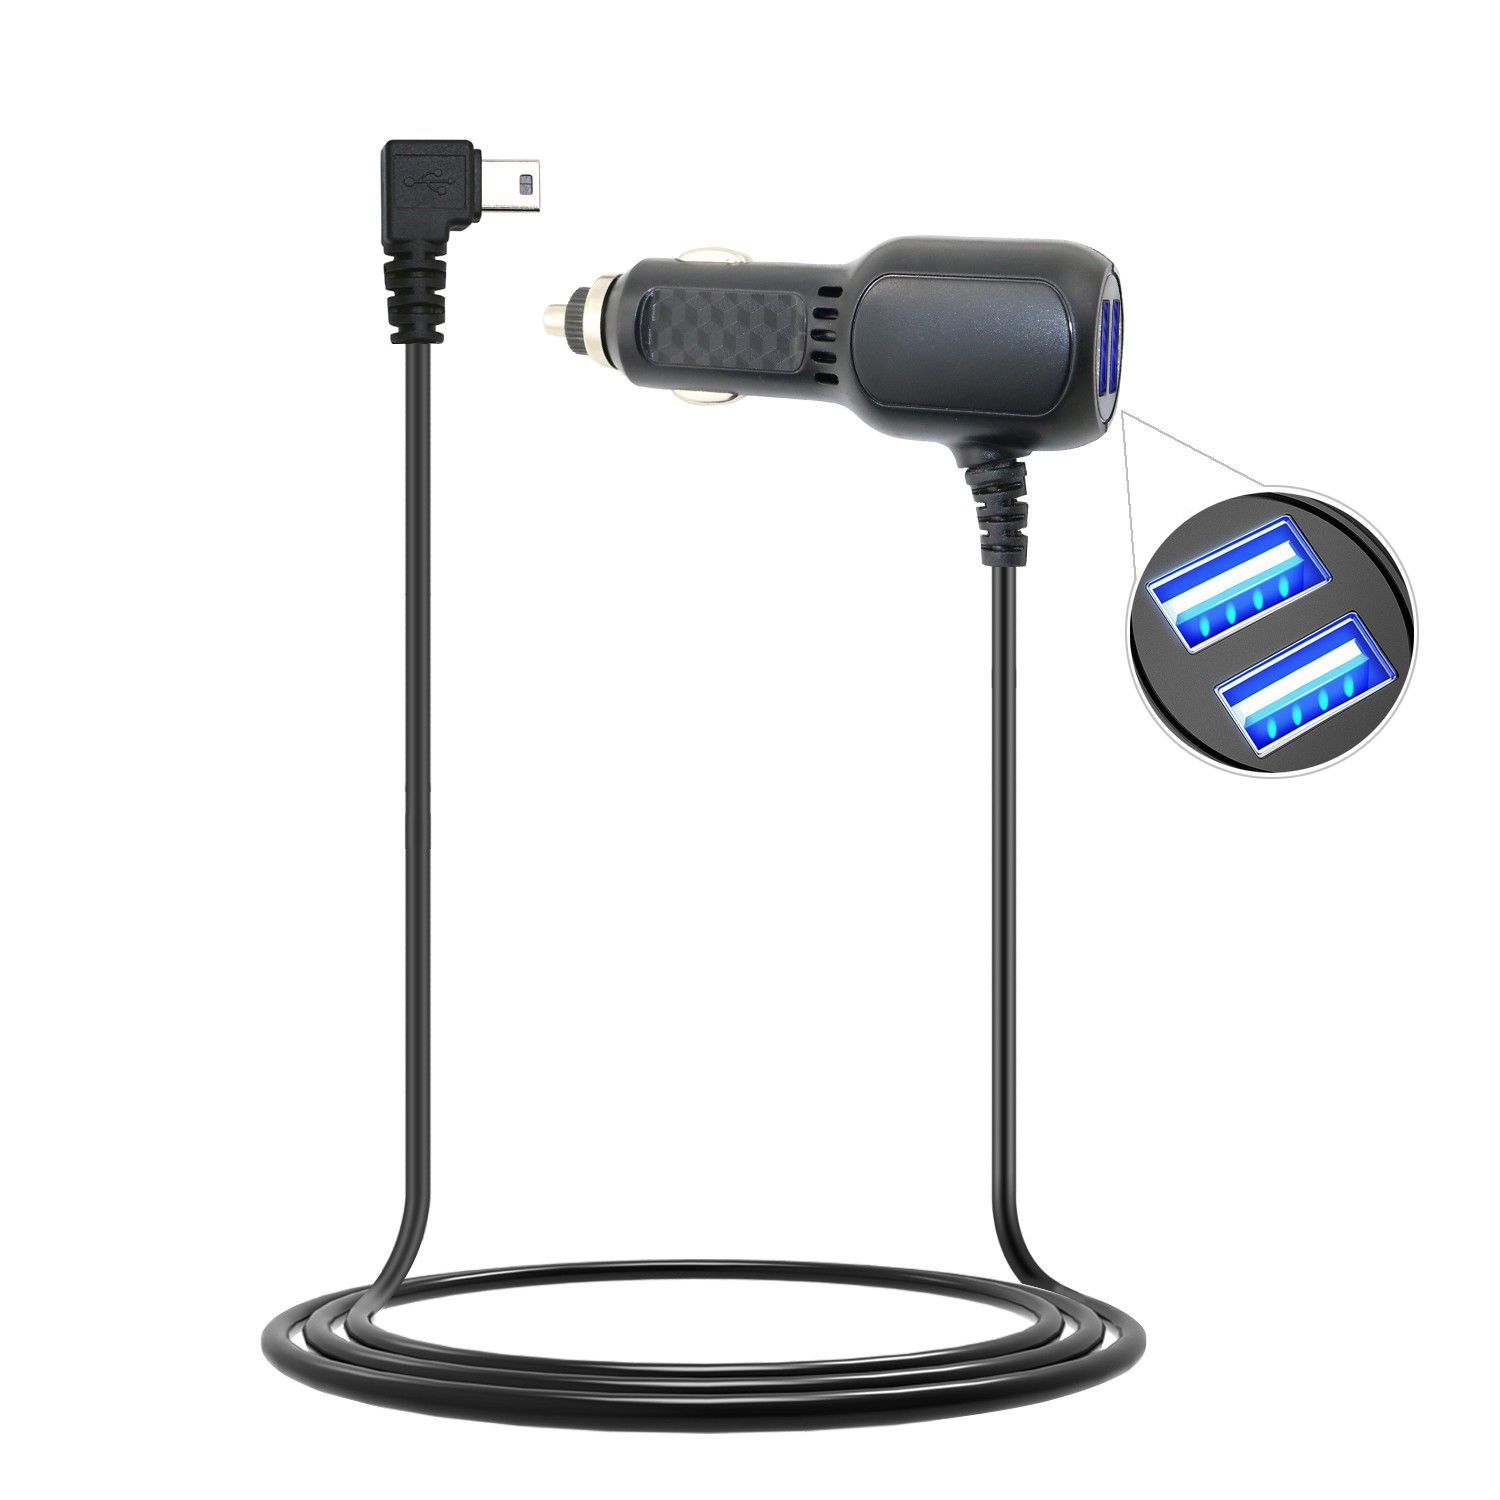 AC//DC Wall Adapter Cord for Magellan GPS Roadmate RM 9270 T-LM FYL Car Charger